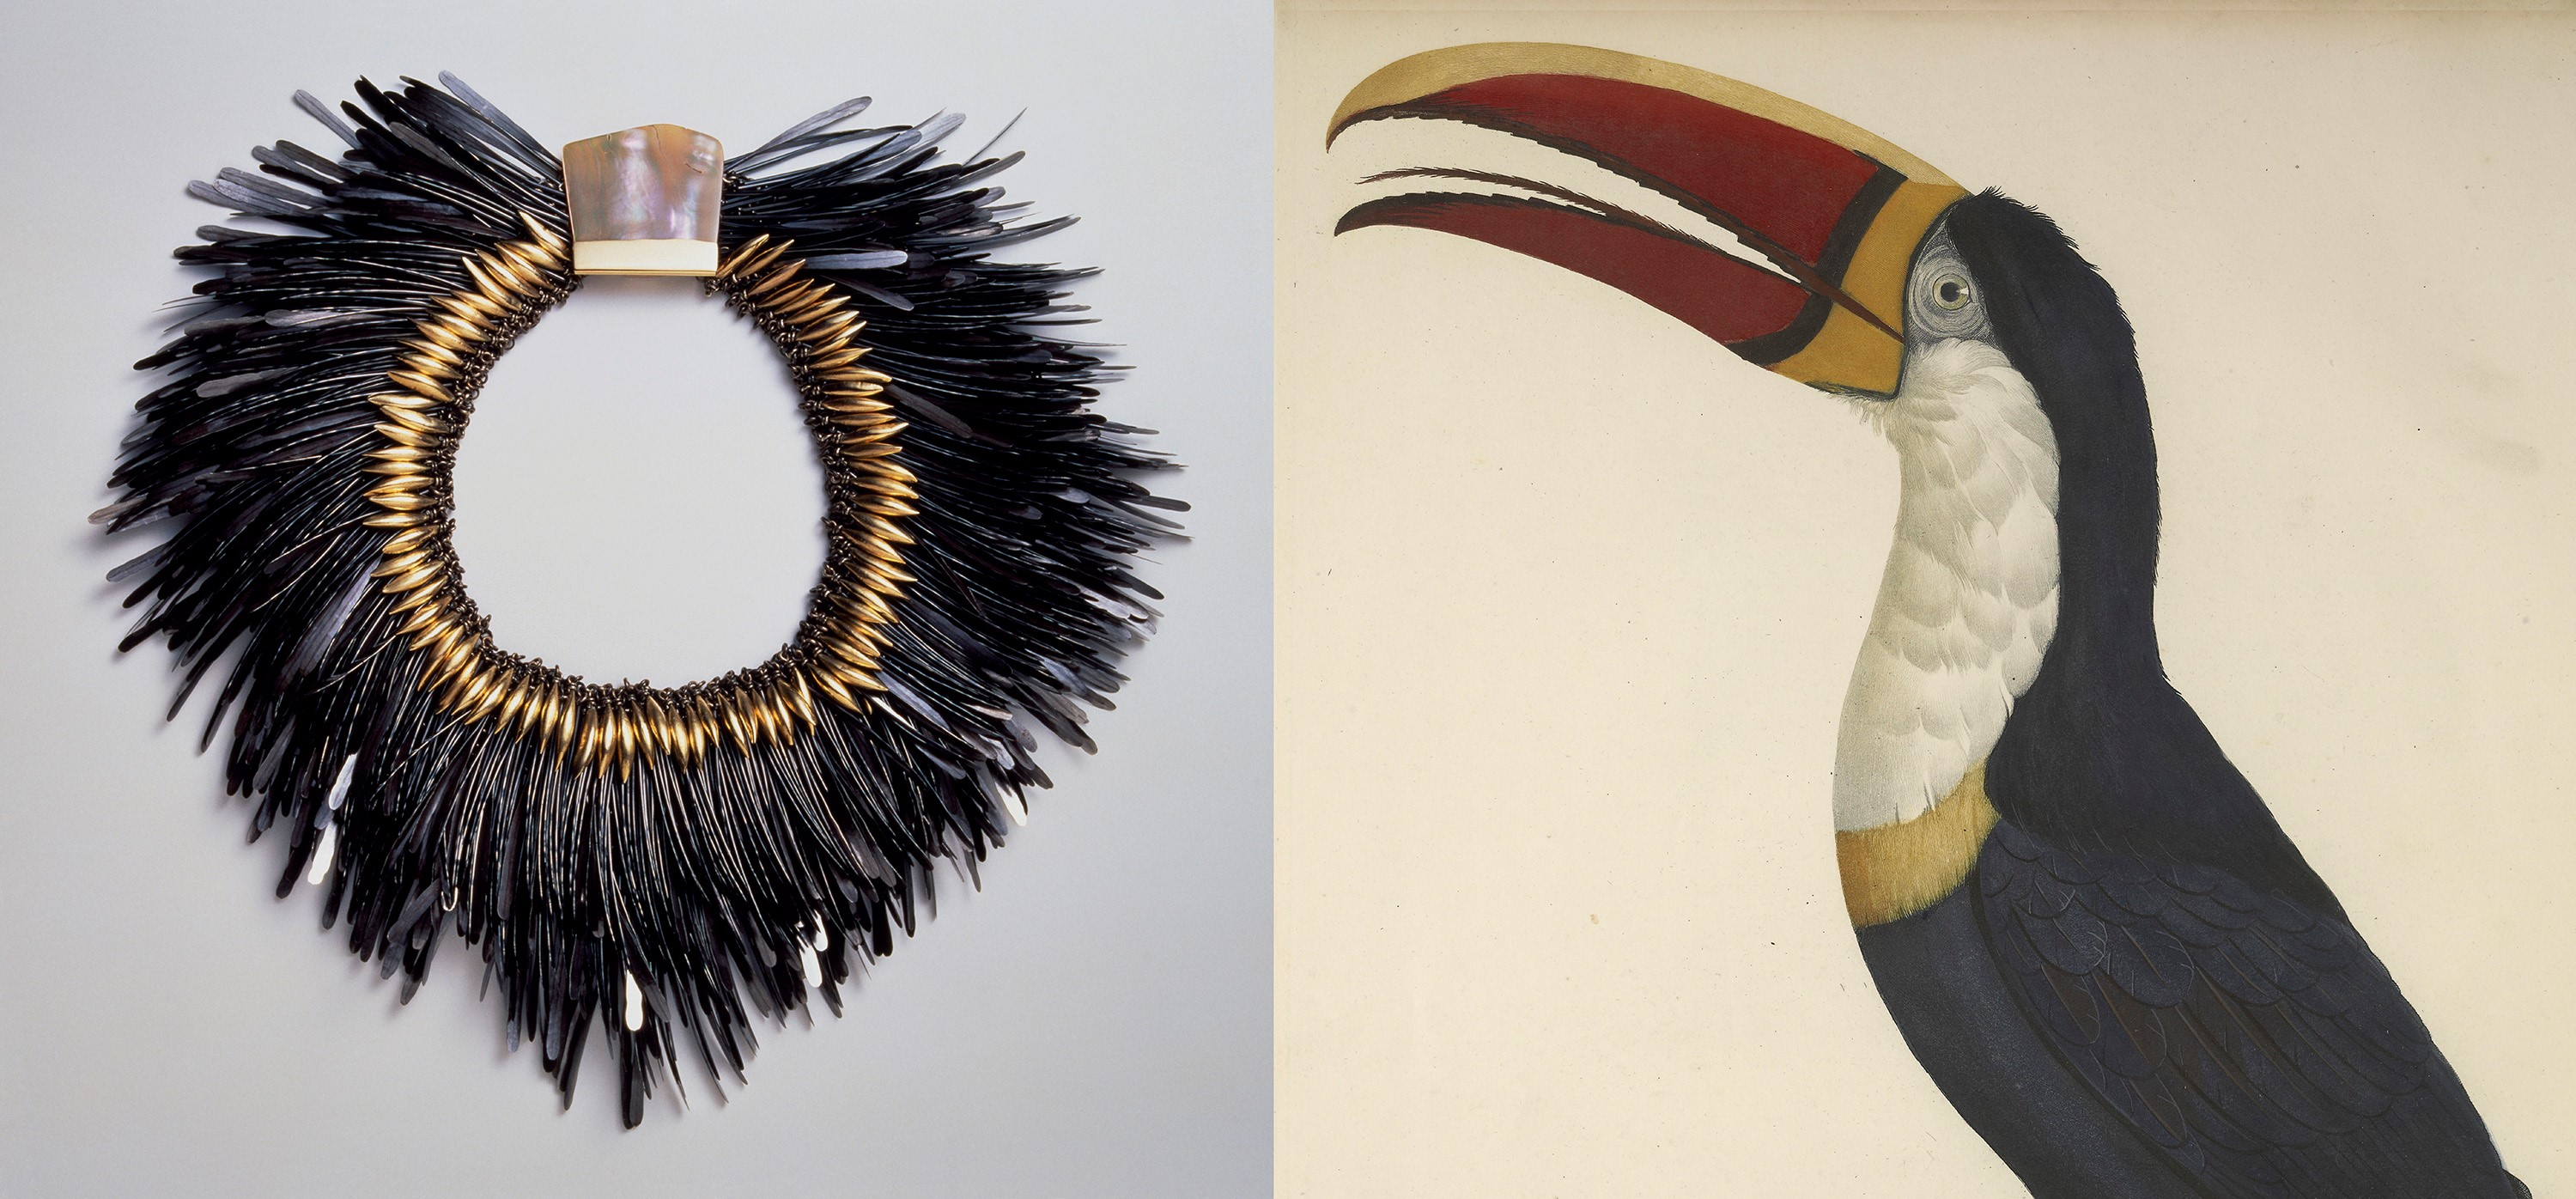 Composite photo of bird and feathers